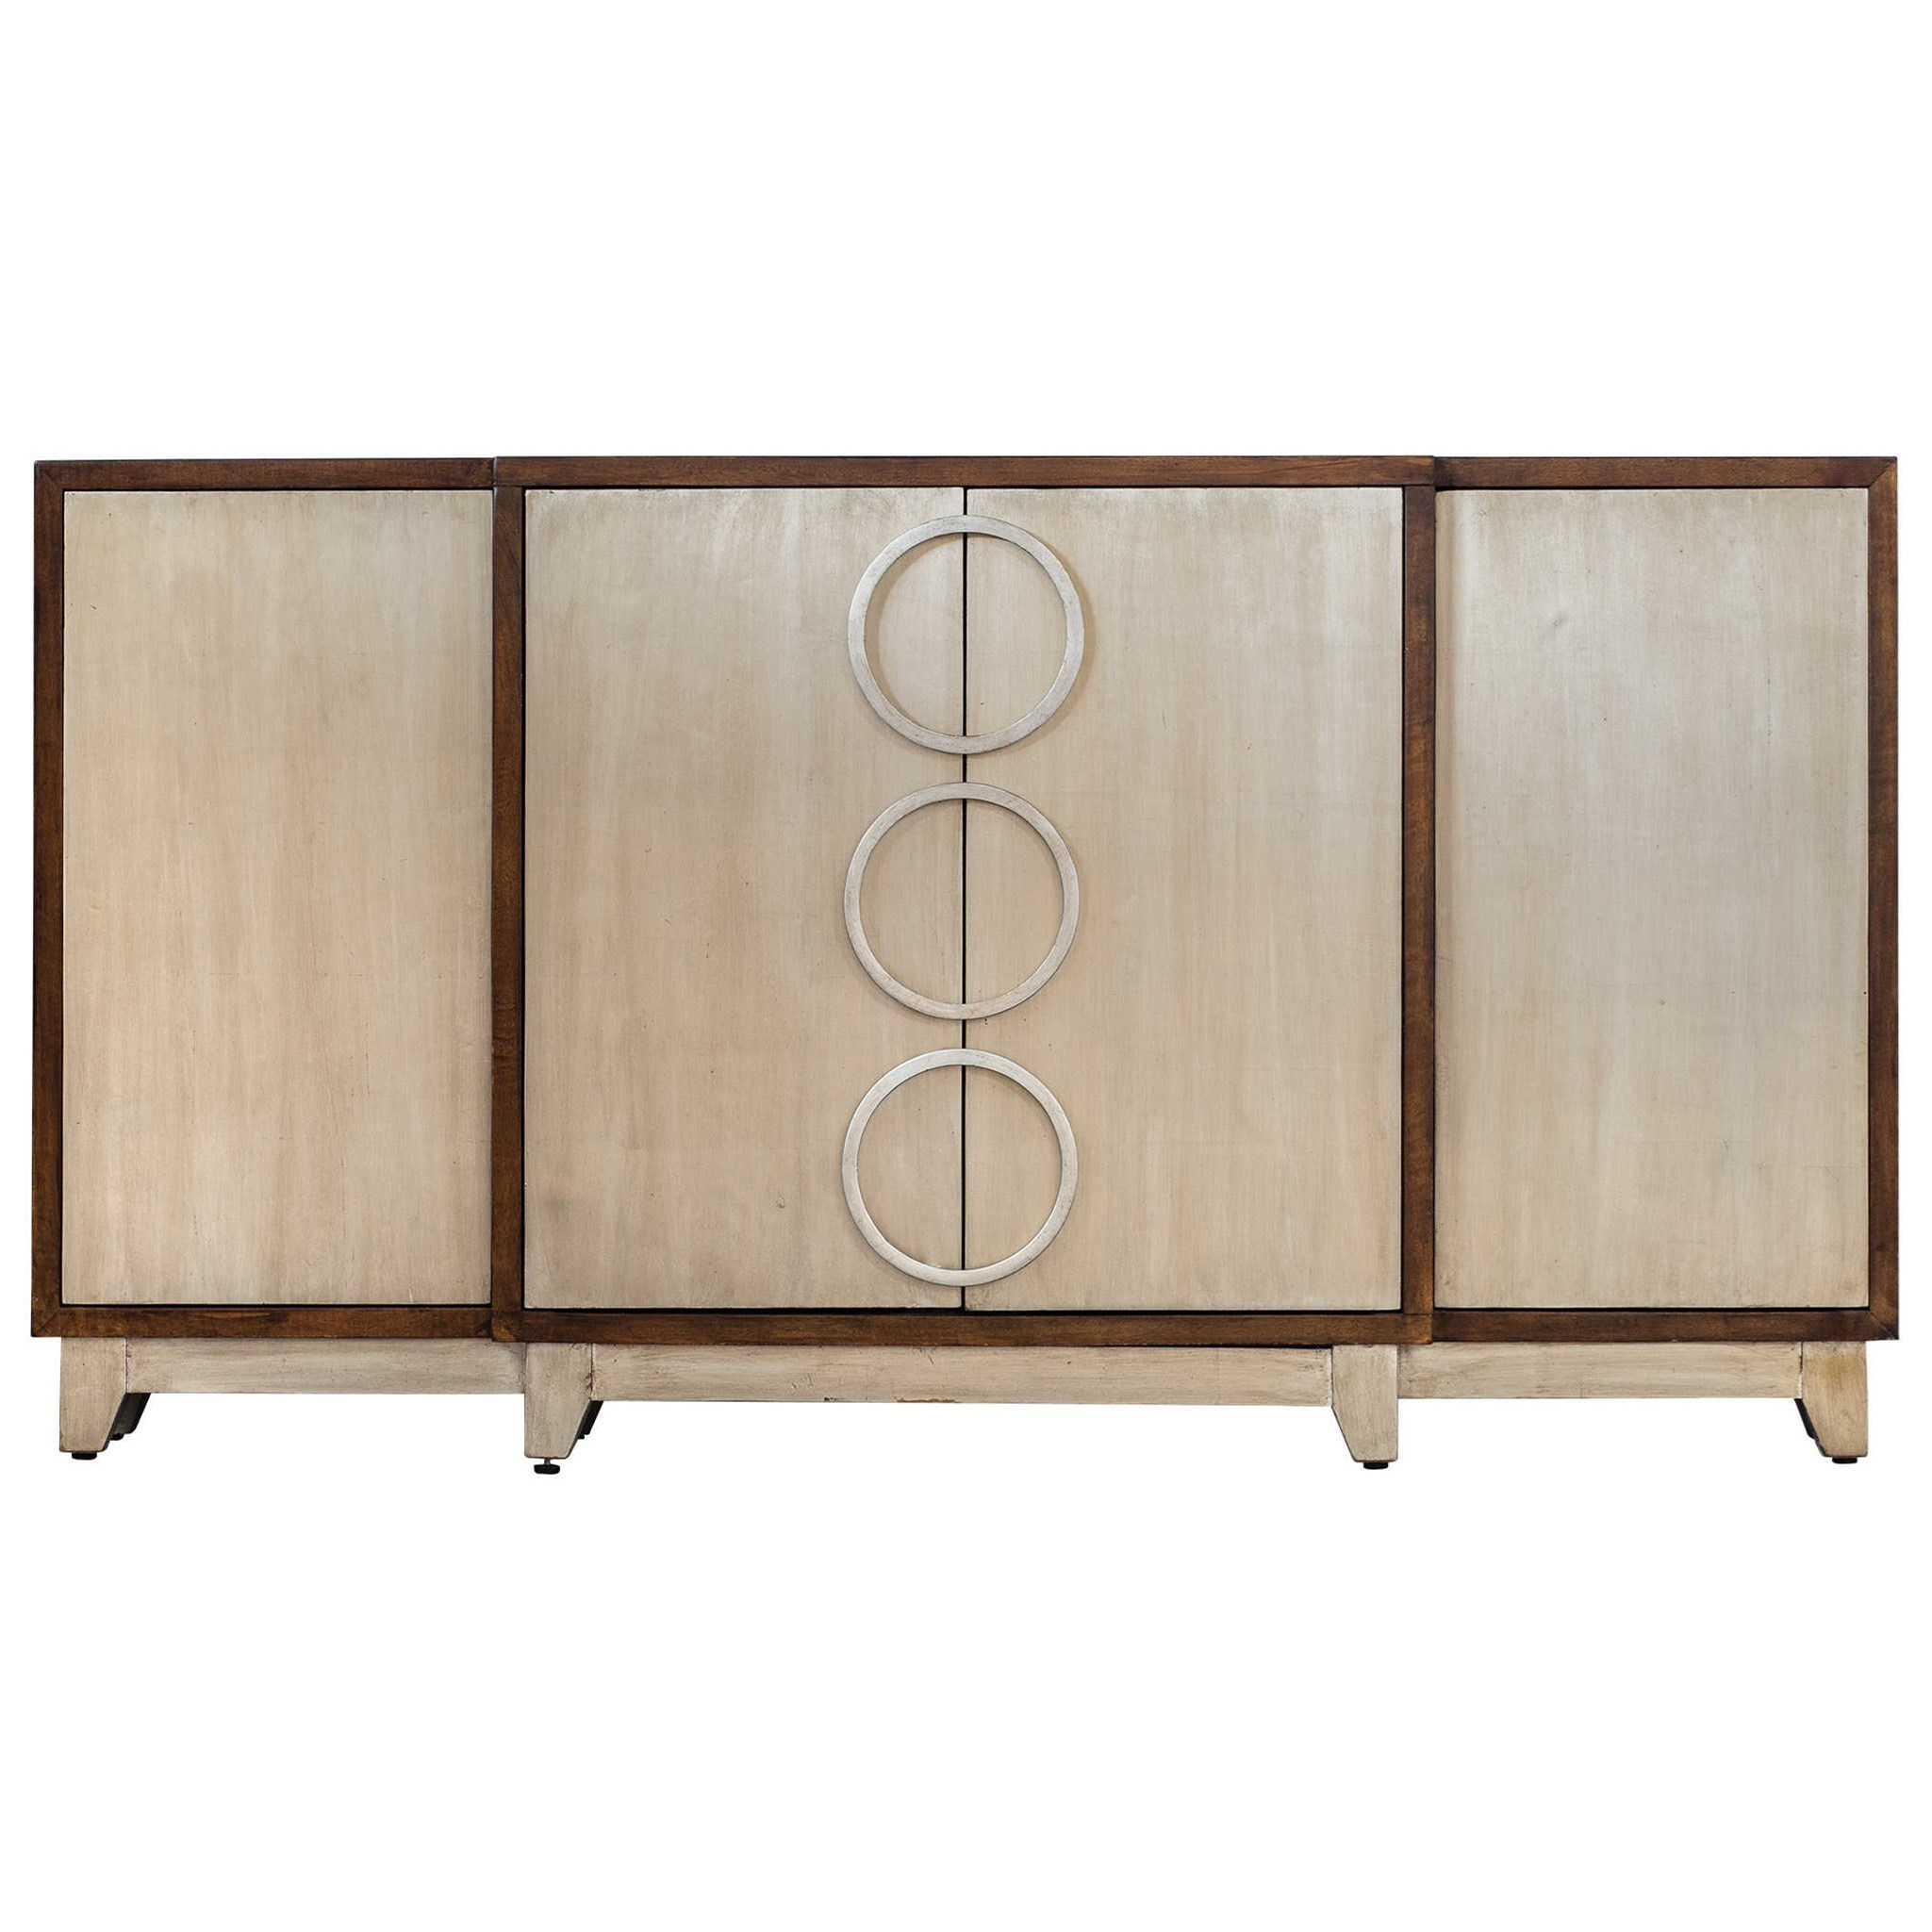 Accent Furniture - Chests Jacinta Modern Console Cabinet by Uttermost at Suburban Furniture